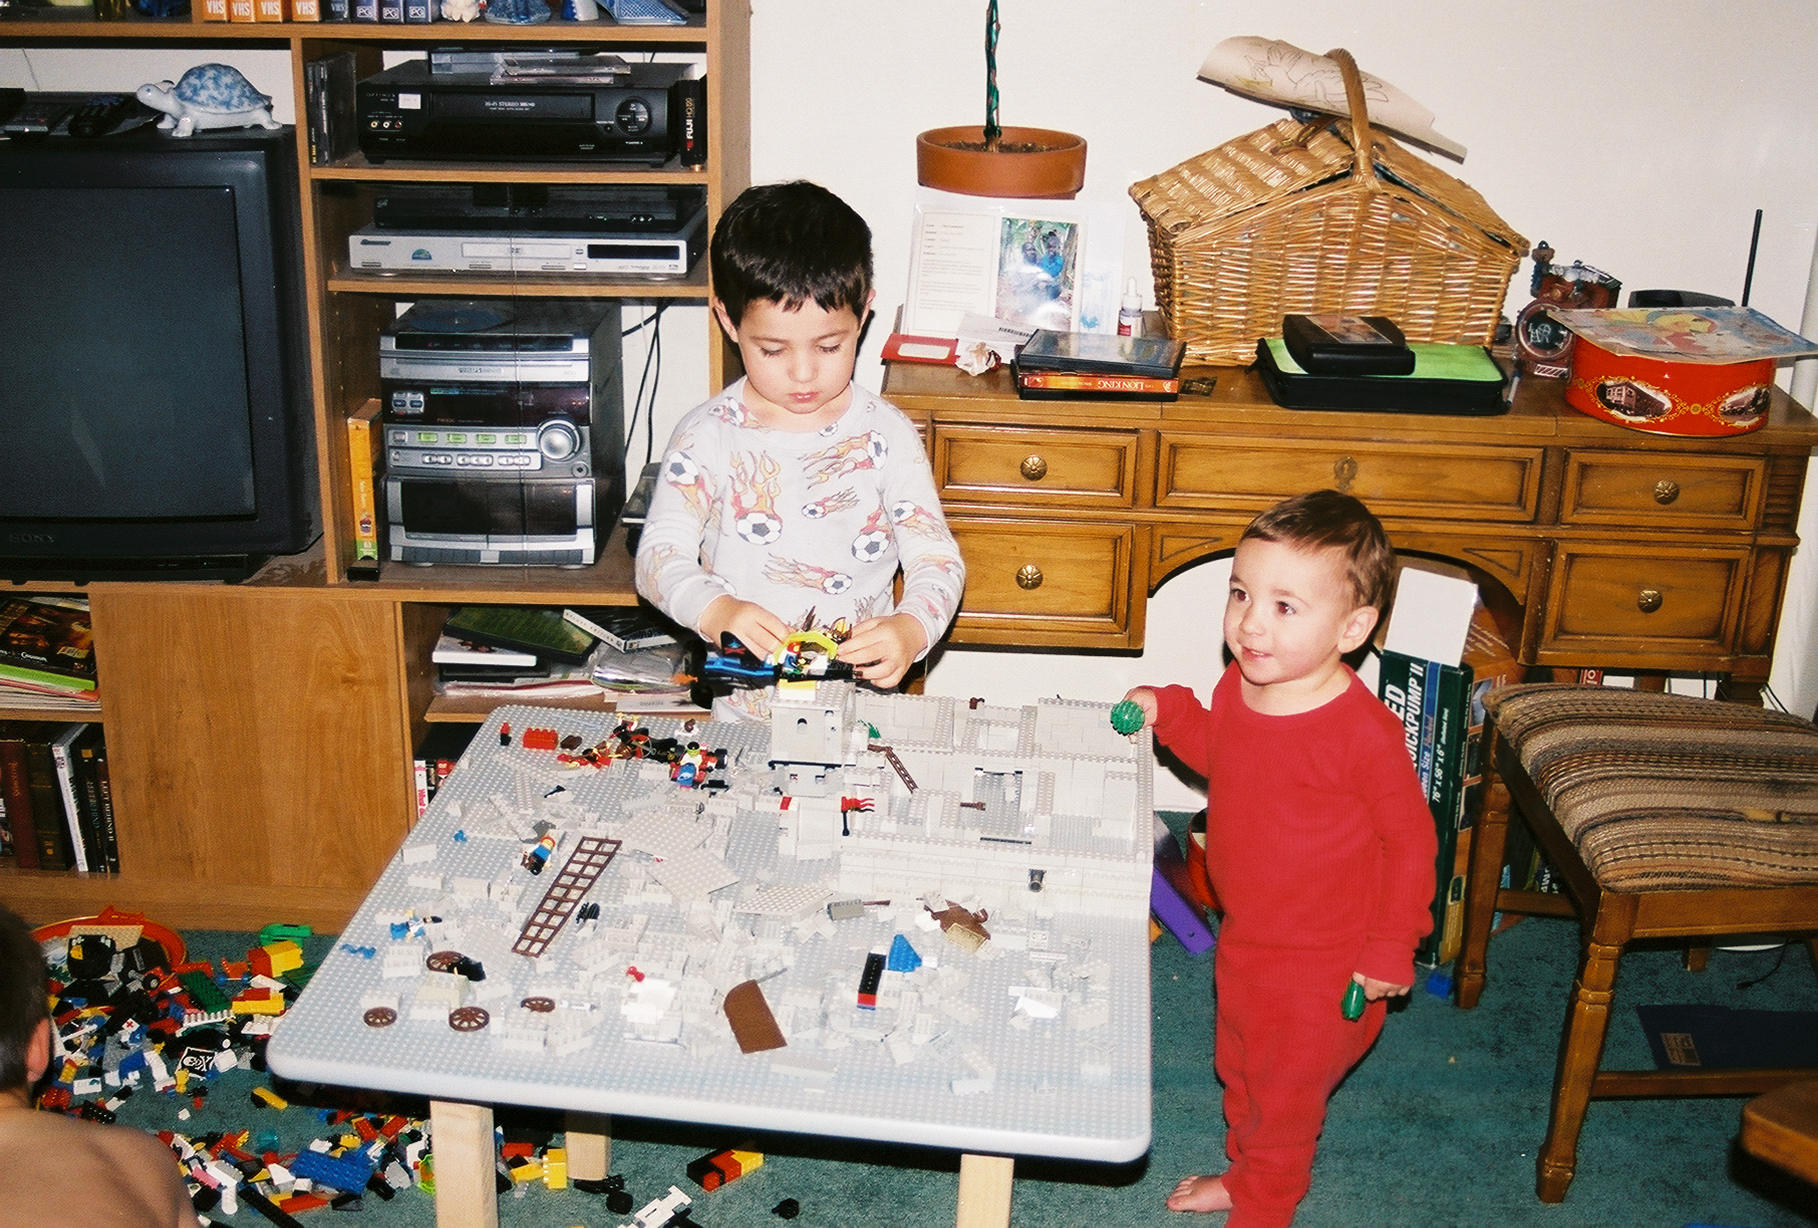 Nevan and Liam playing